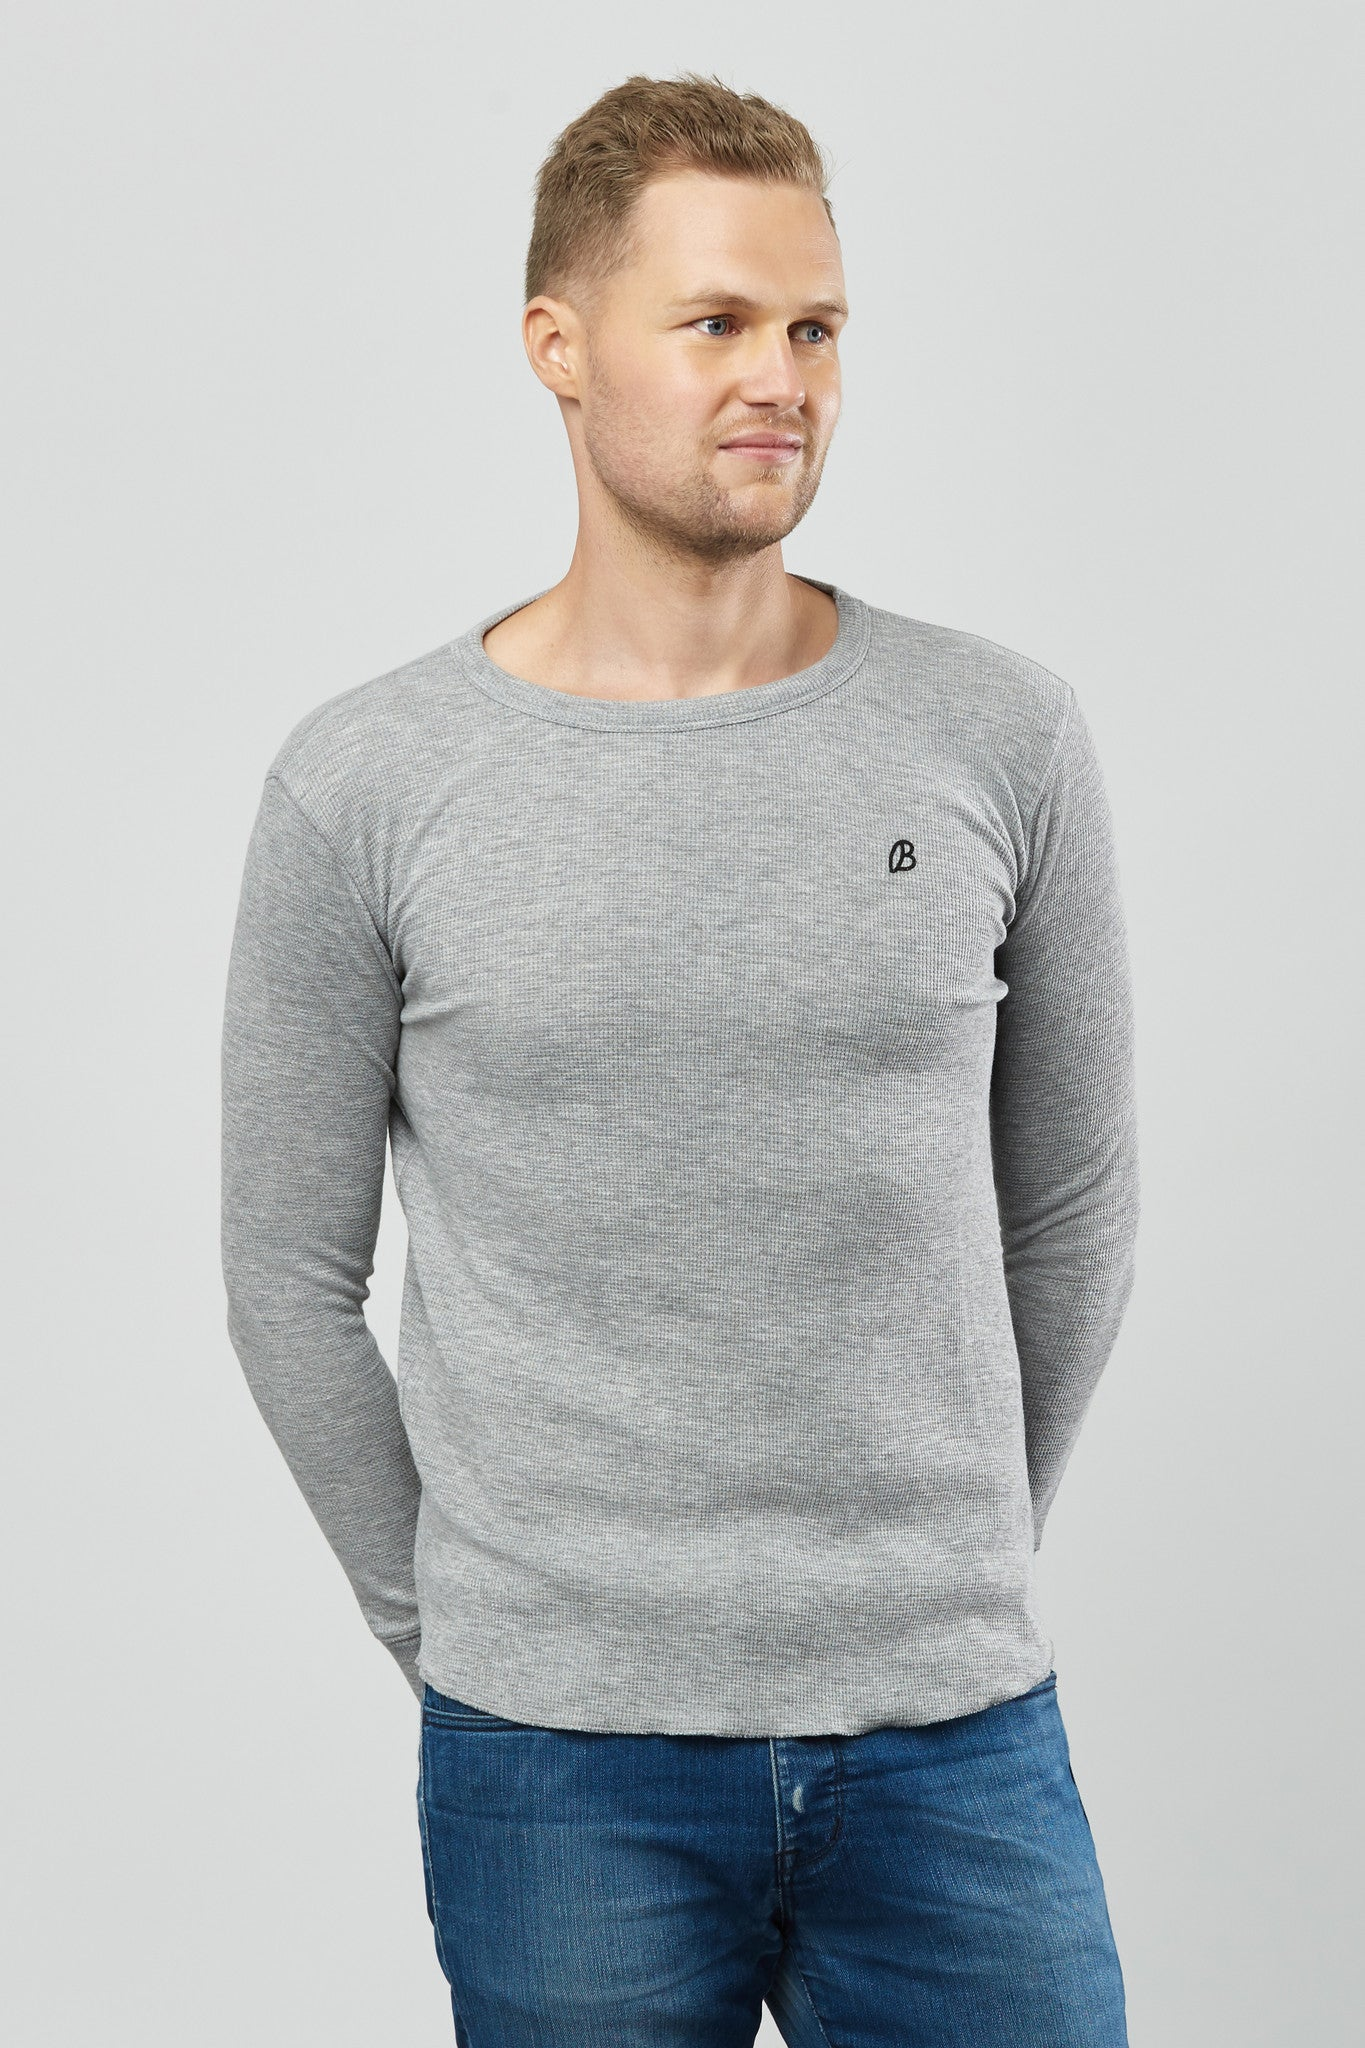 Beren of L.A Waffle Sweater - Grey